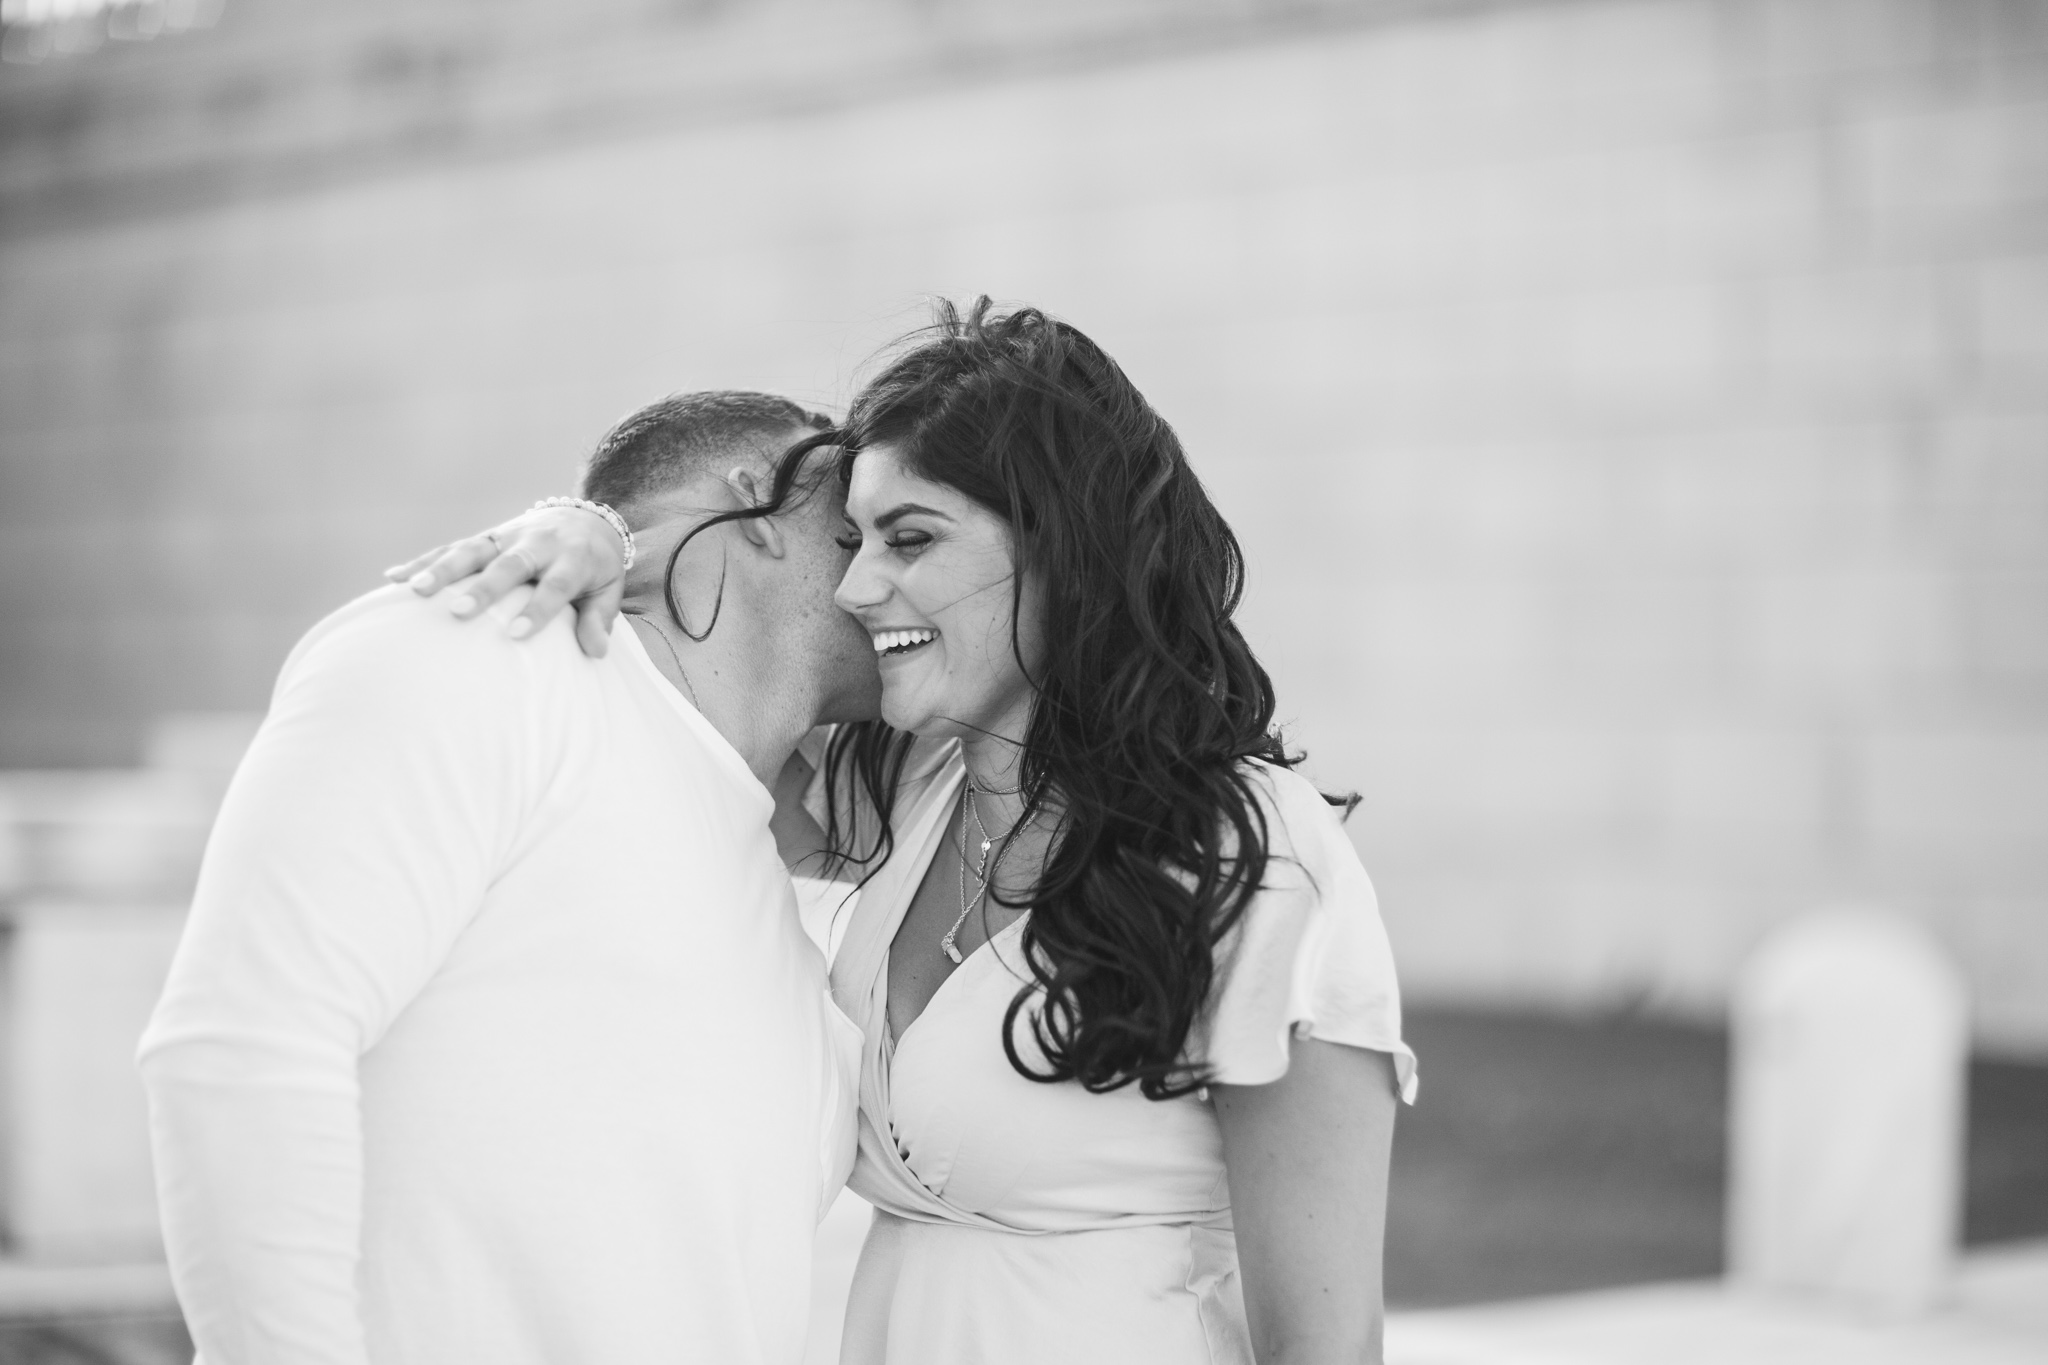 engagement_wedding_photographer_jillian_rollins_photography-161.jpg